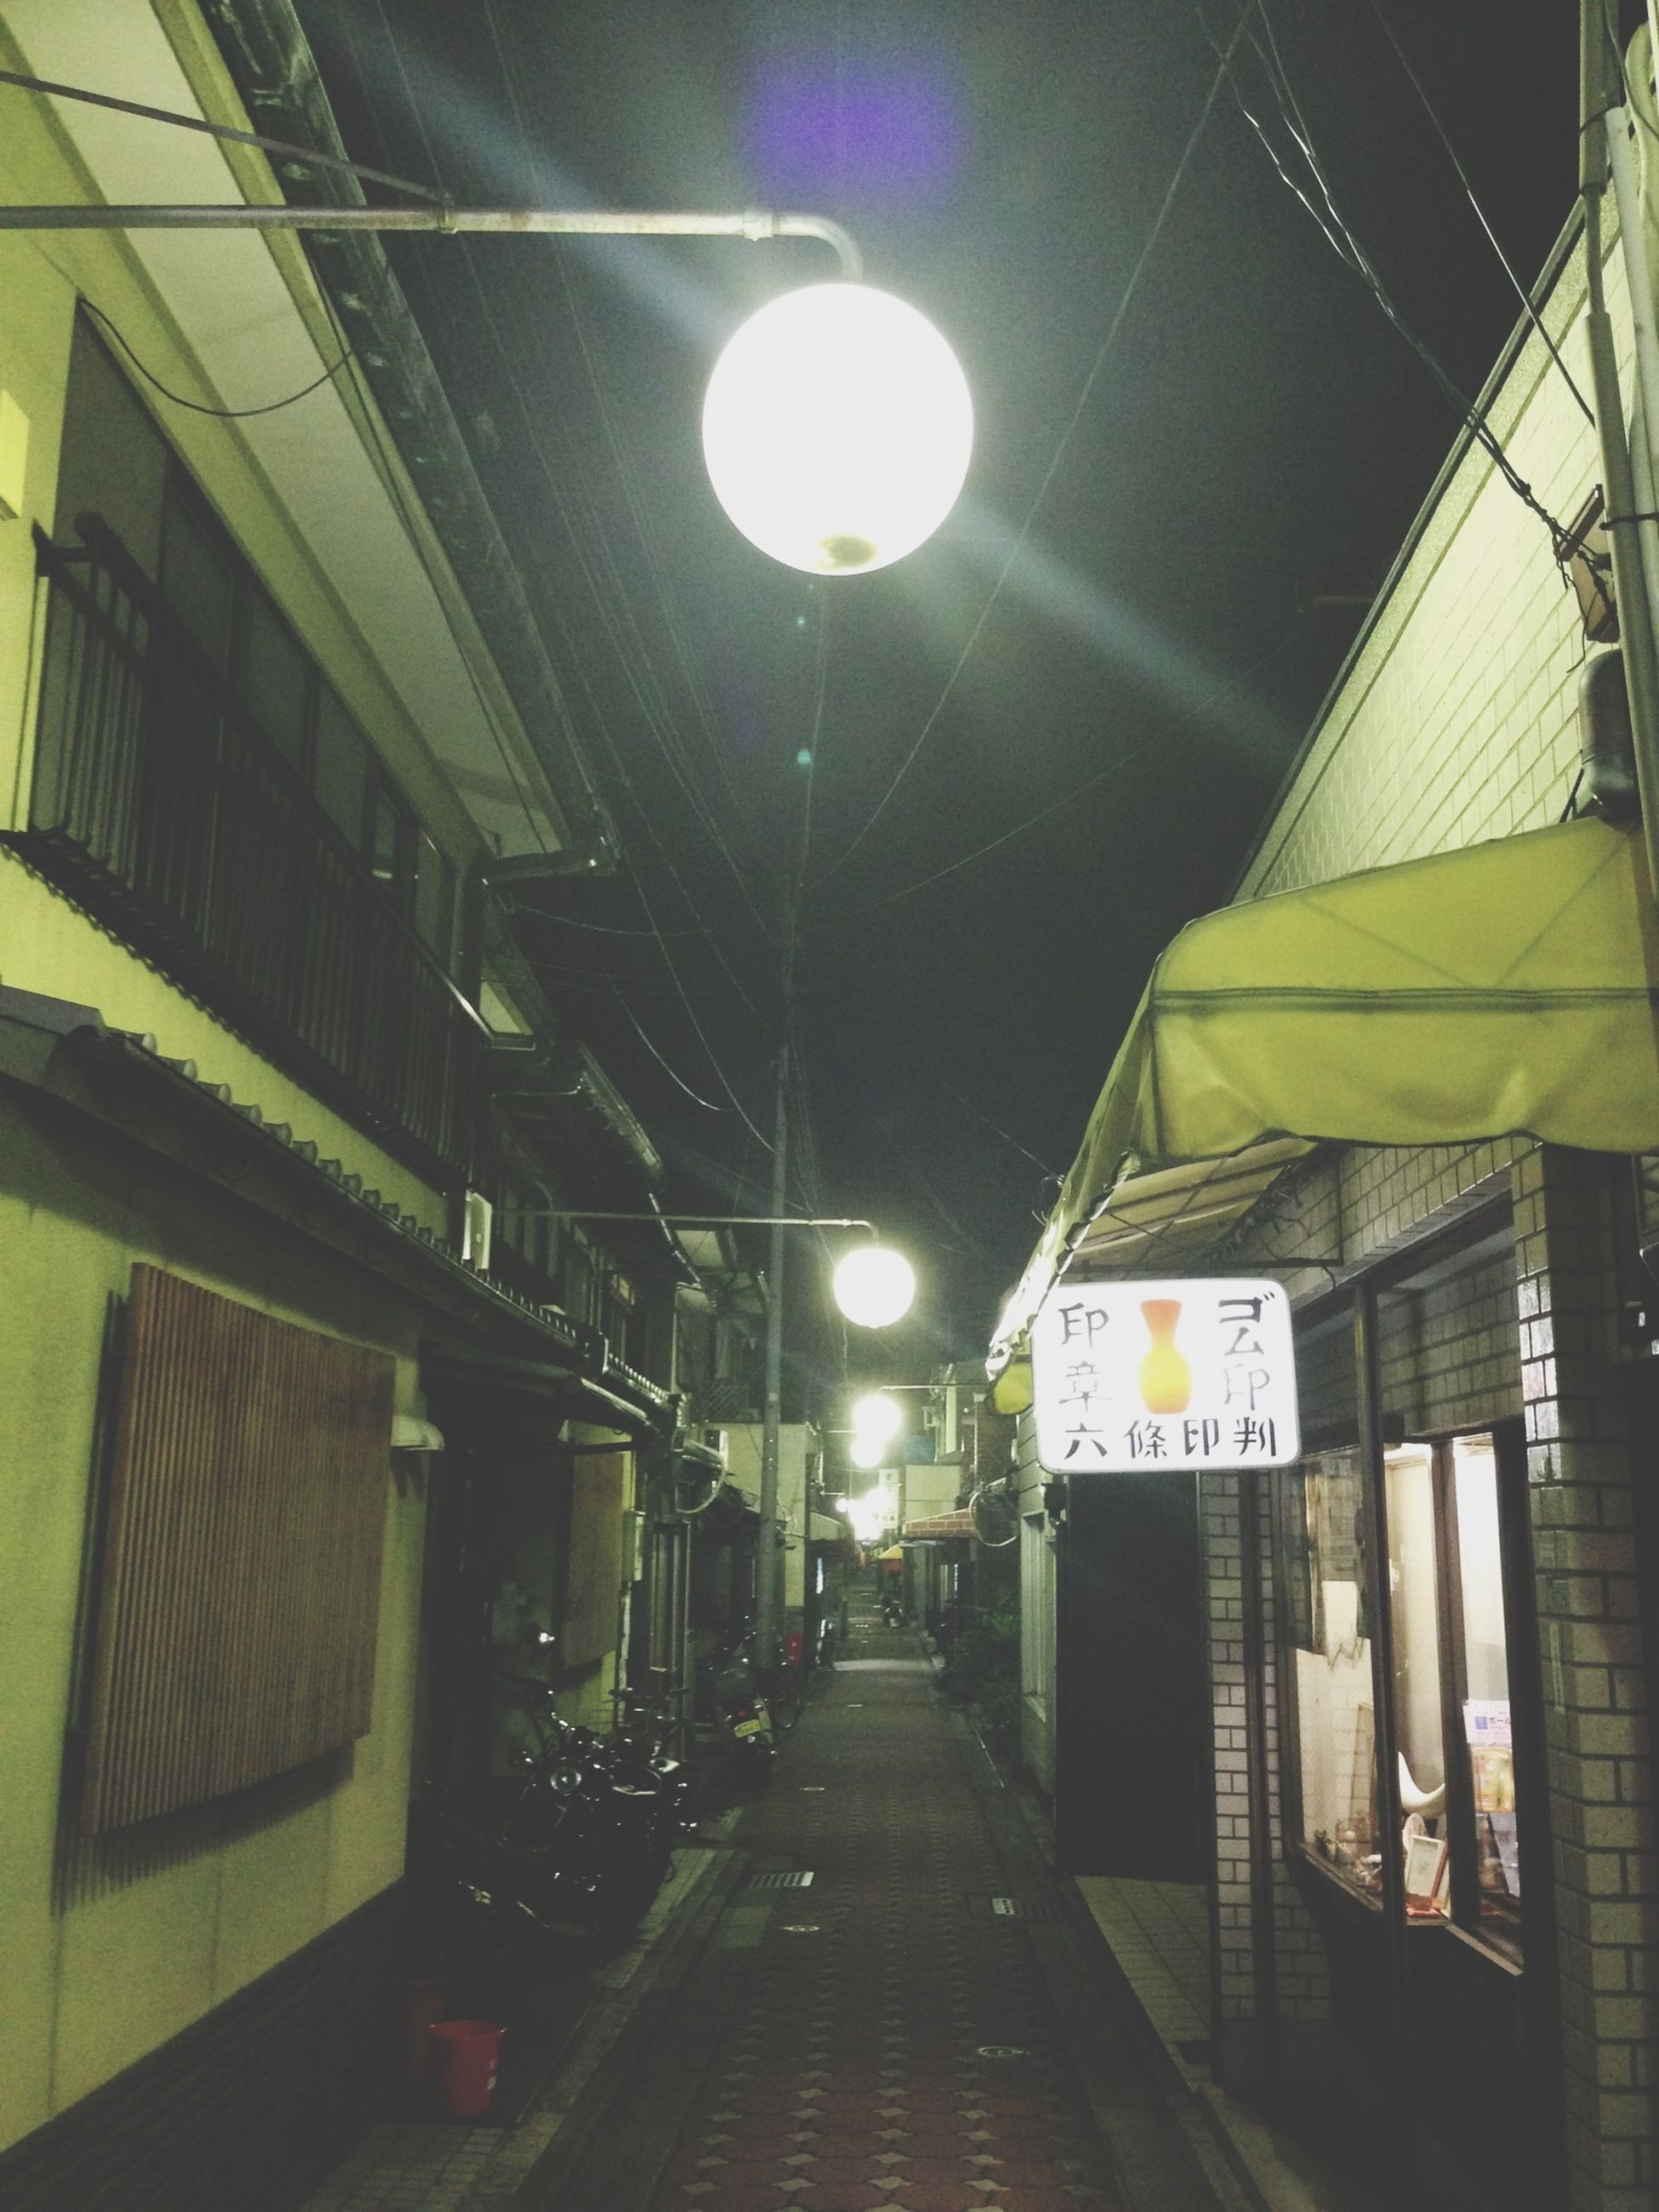 illuminated, lighting equipment, architecture, built structure, the way forward, night, electricity, ceiling, diminishing perspective, electric light, building exterior, street light, transportation, vanishing point, empty, indoors, building, light - natural phenomenon, no people, long